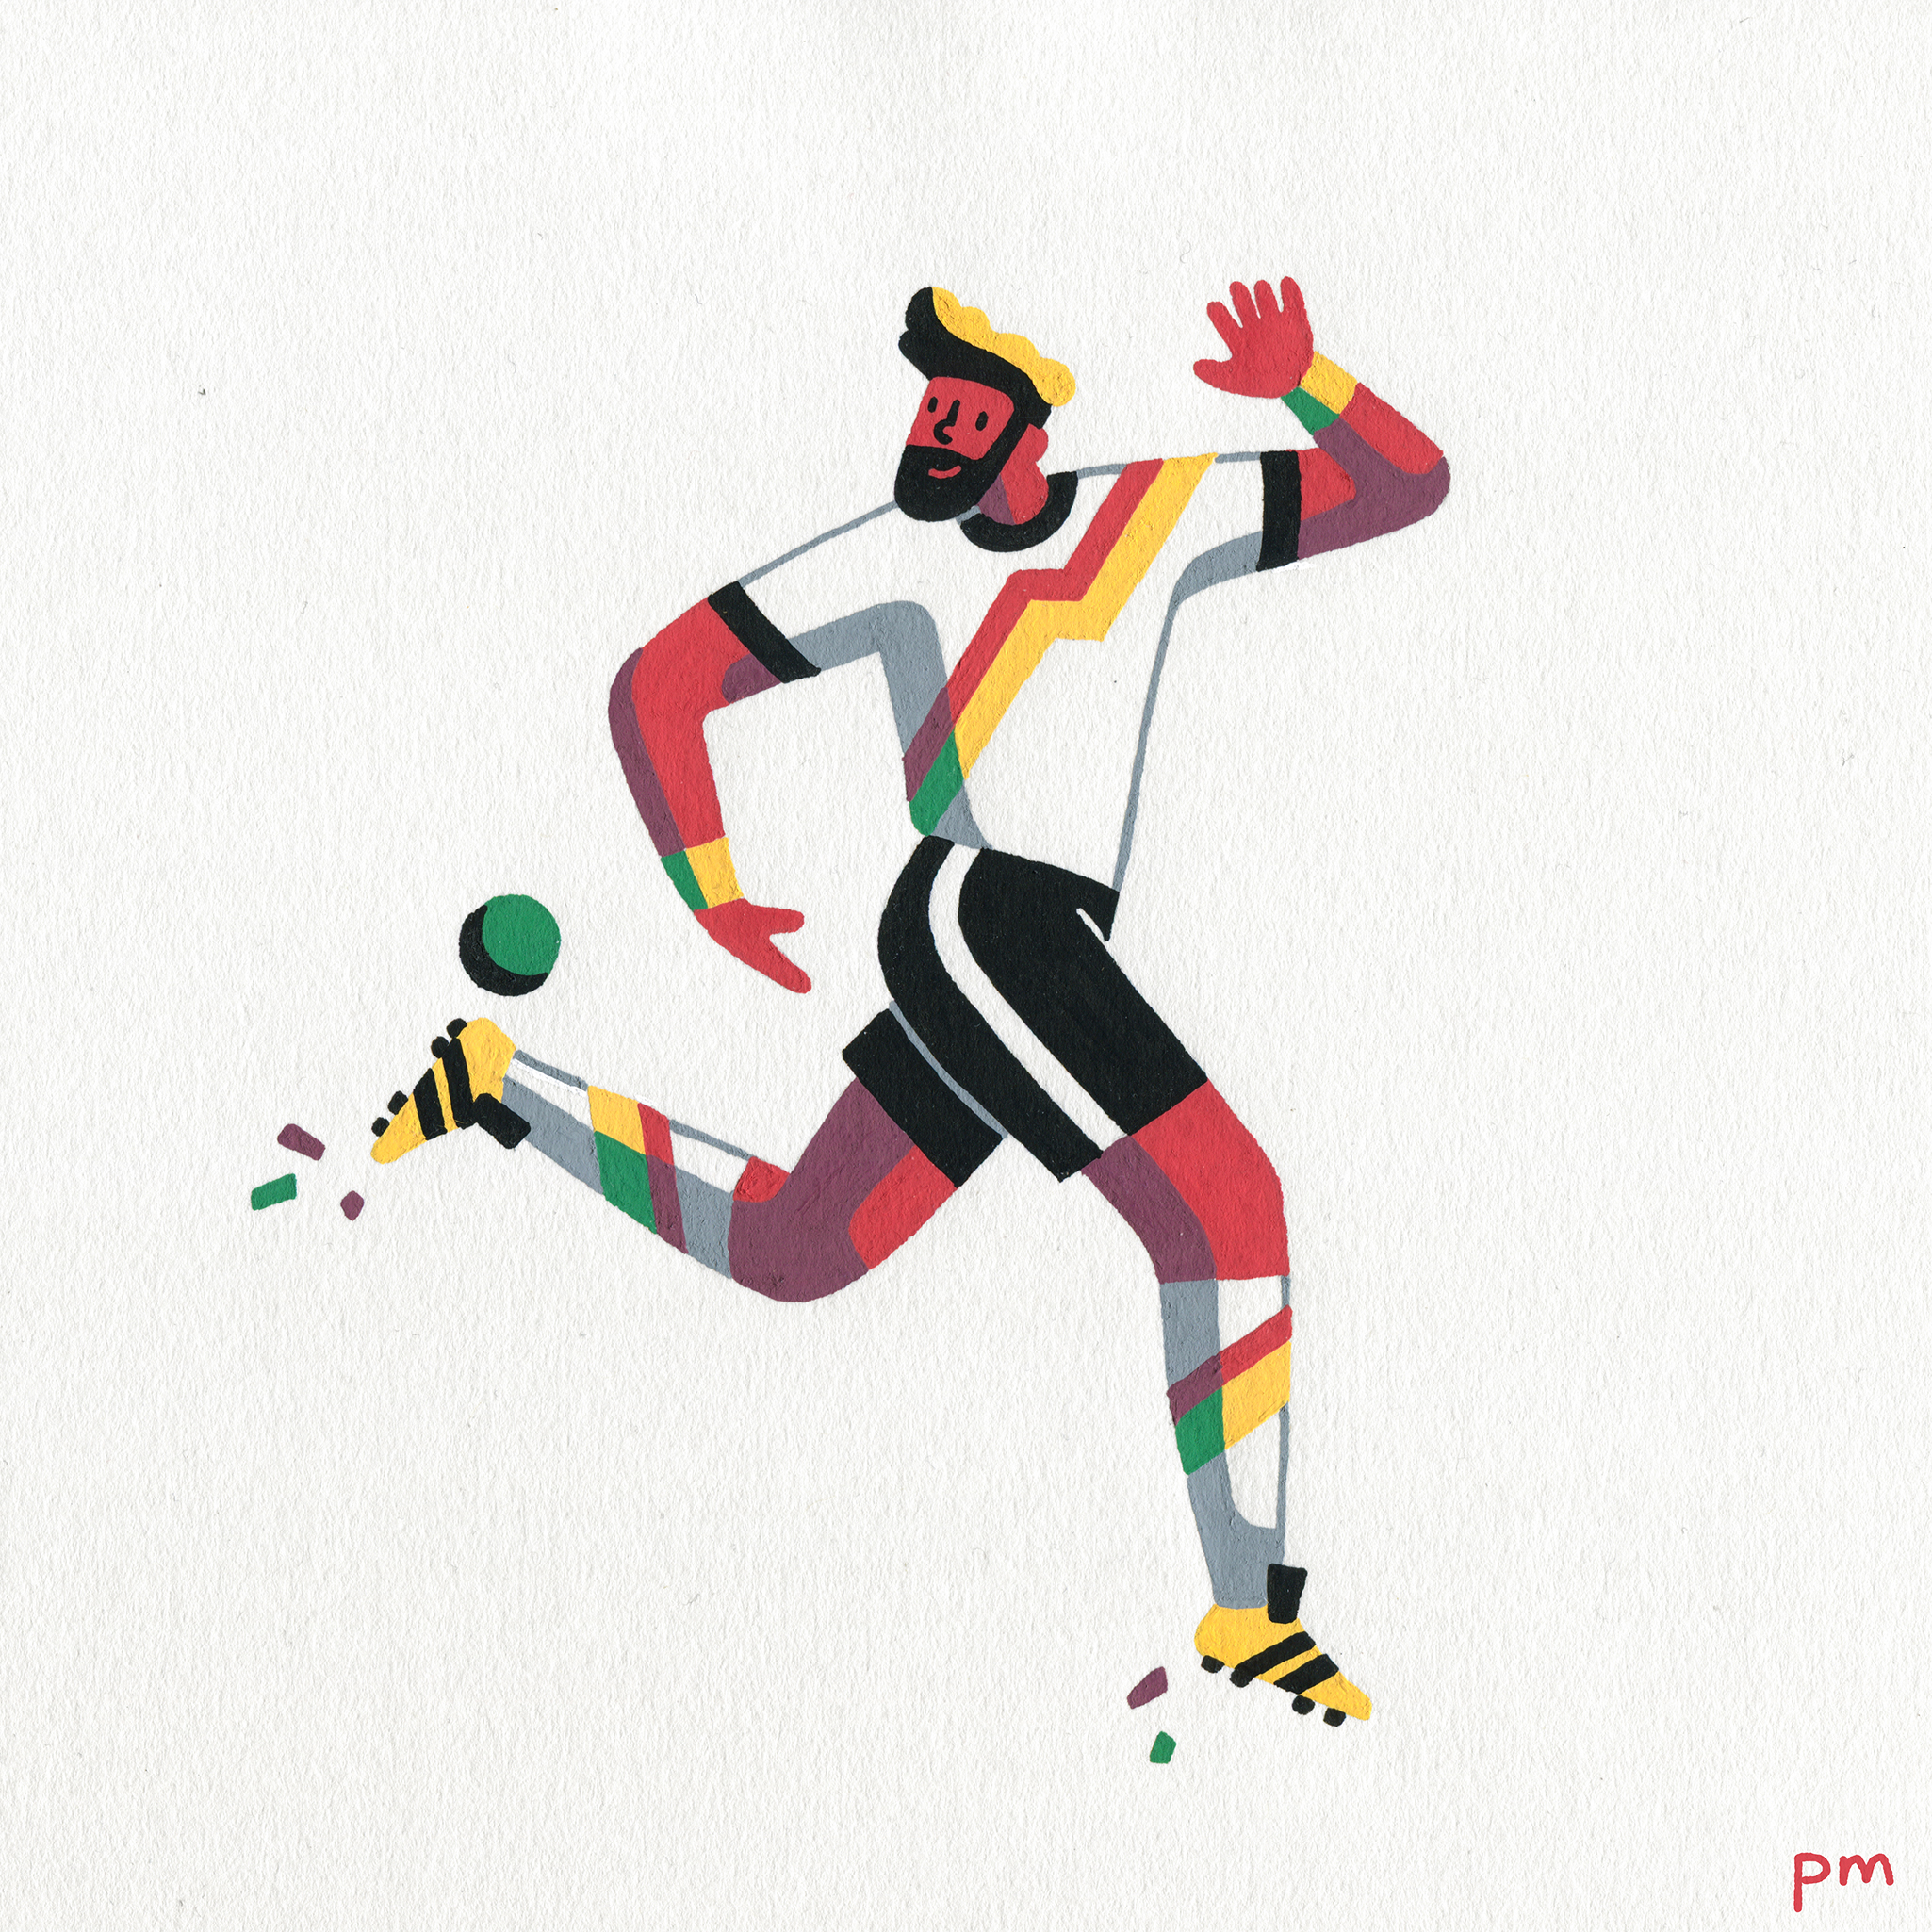 An illustration of a German footballer to celebrate my favourite team, Germany, for the World Cup.